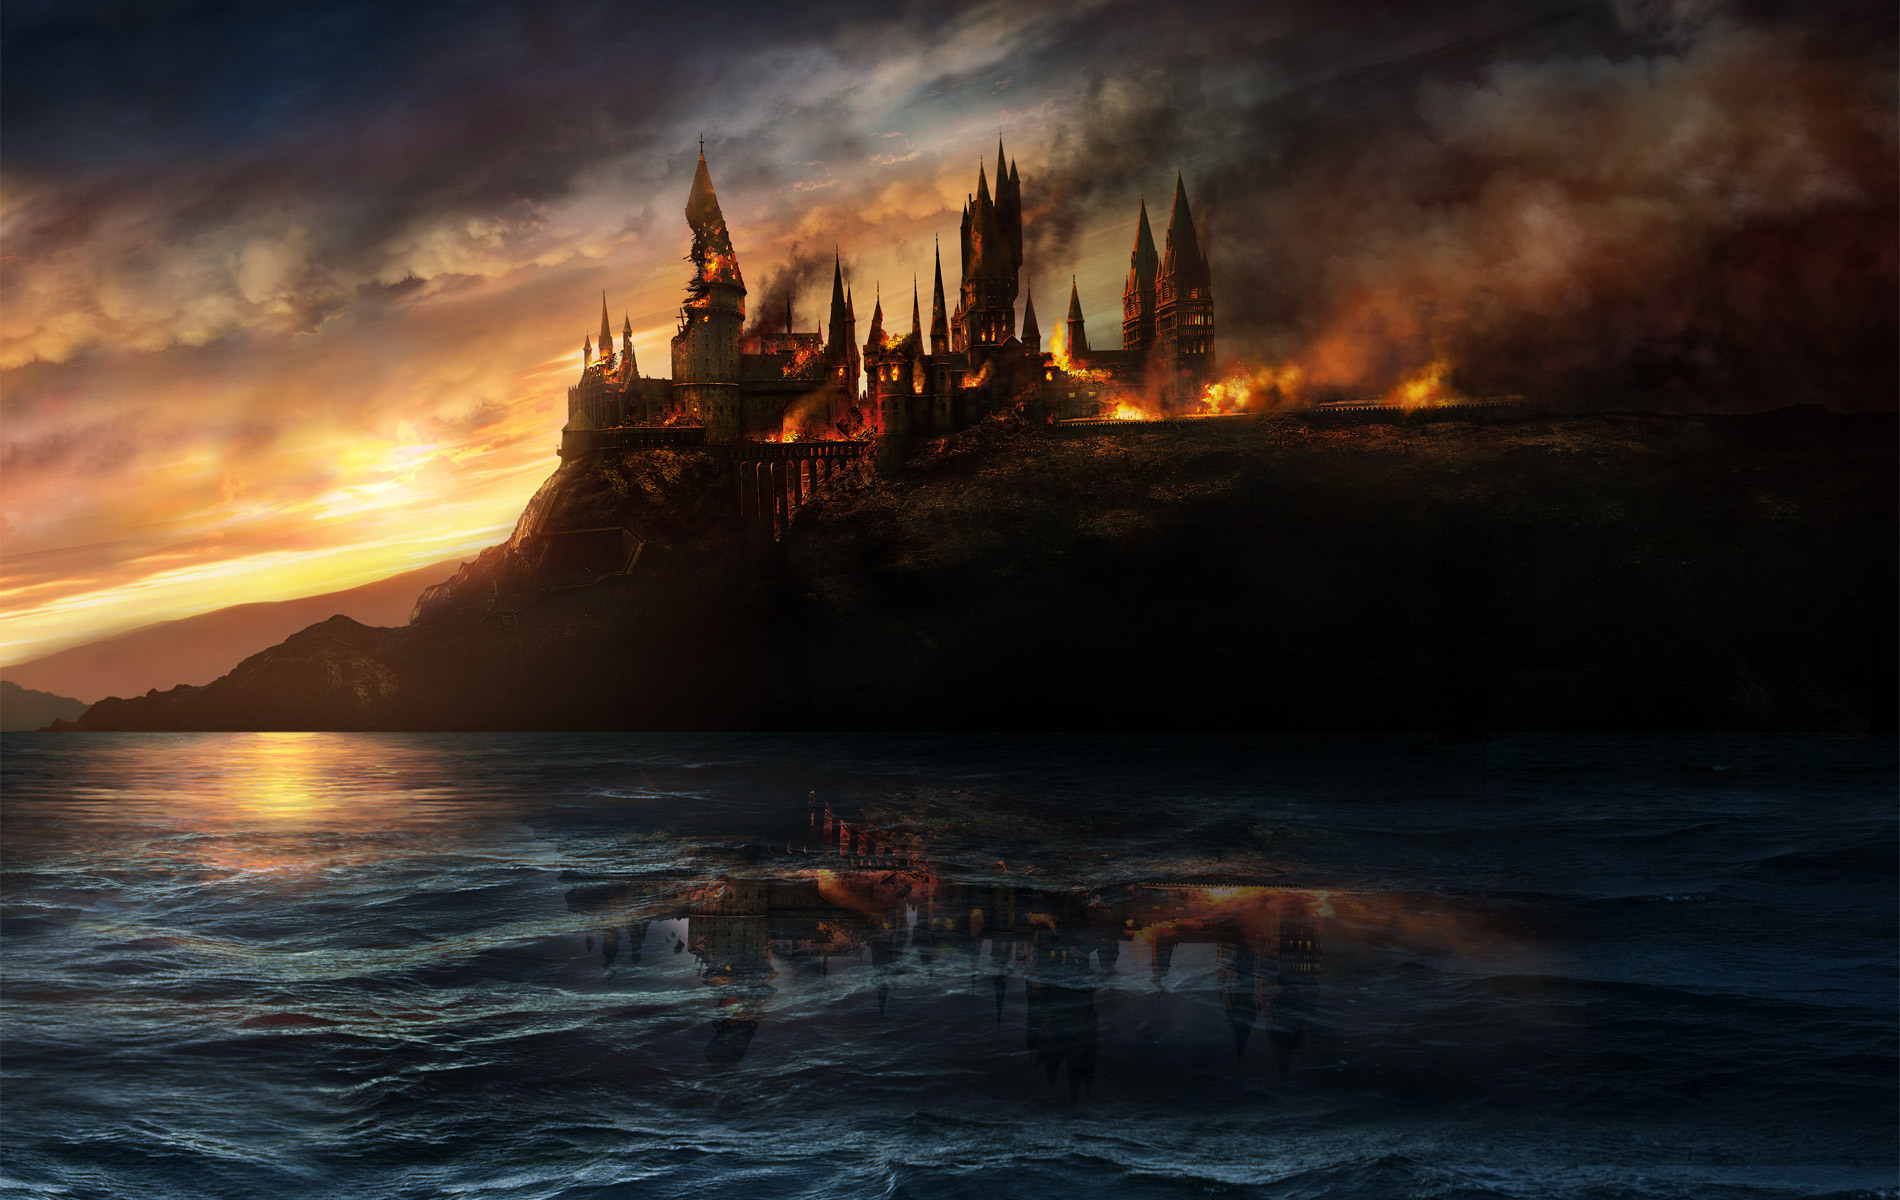 Harry Potter Hogwarts Hogwarts Burning Harry Potter Photo 28128154 Fanpop